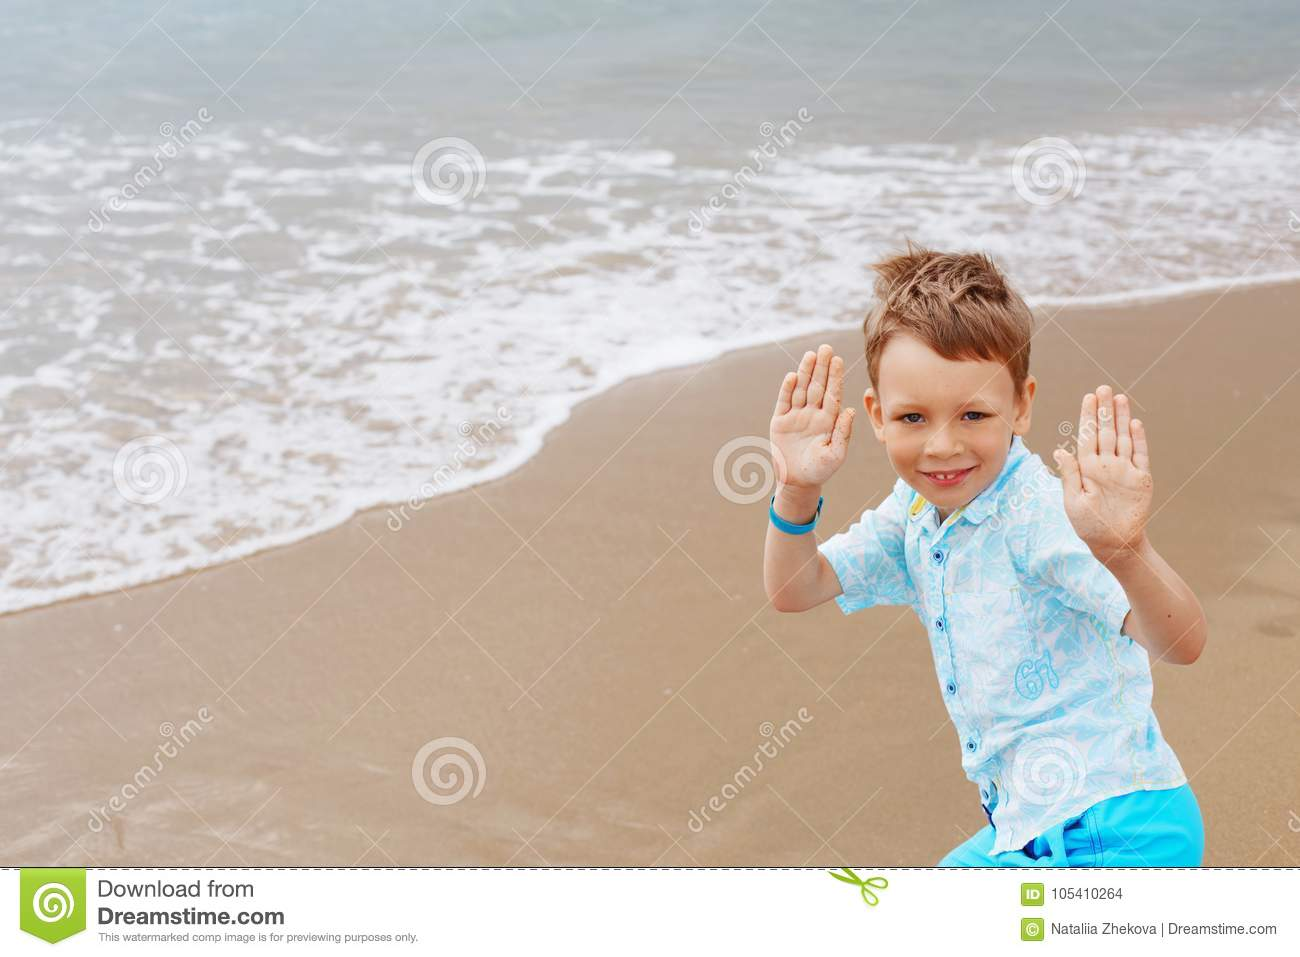 6959aeb85 Little boy in hat, shirt and shorts on the beach sand. Little boy having  fun on tropical ocean beach. Kid during family sea vacation. Summer water  fun.